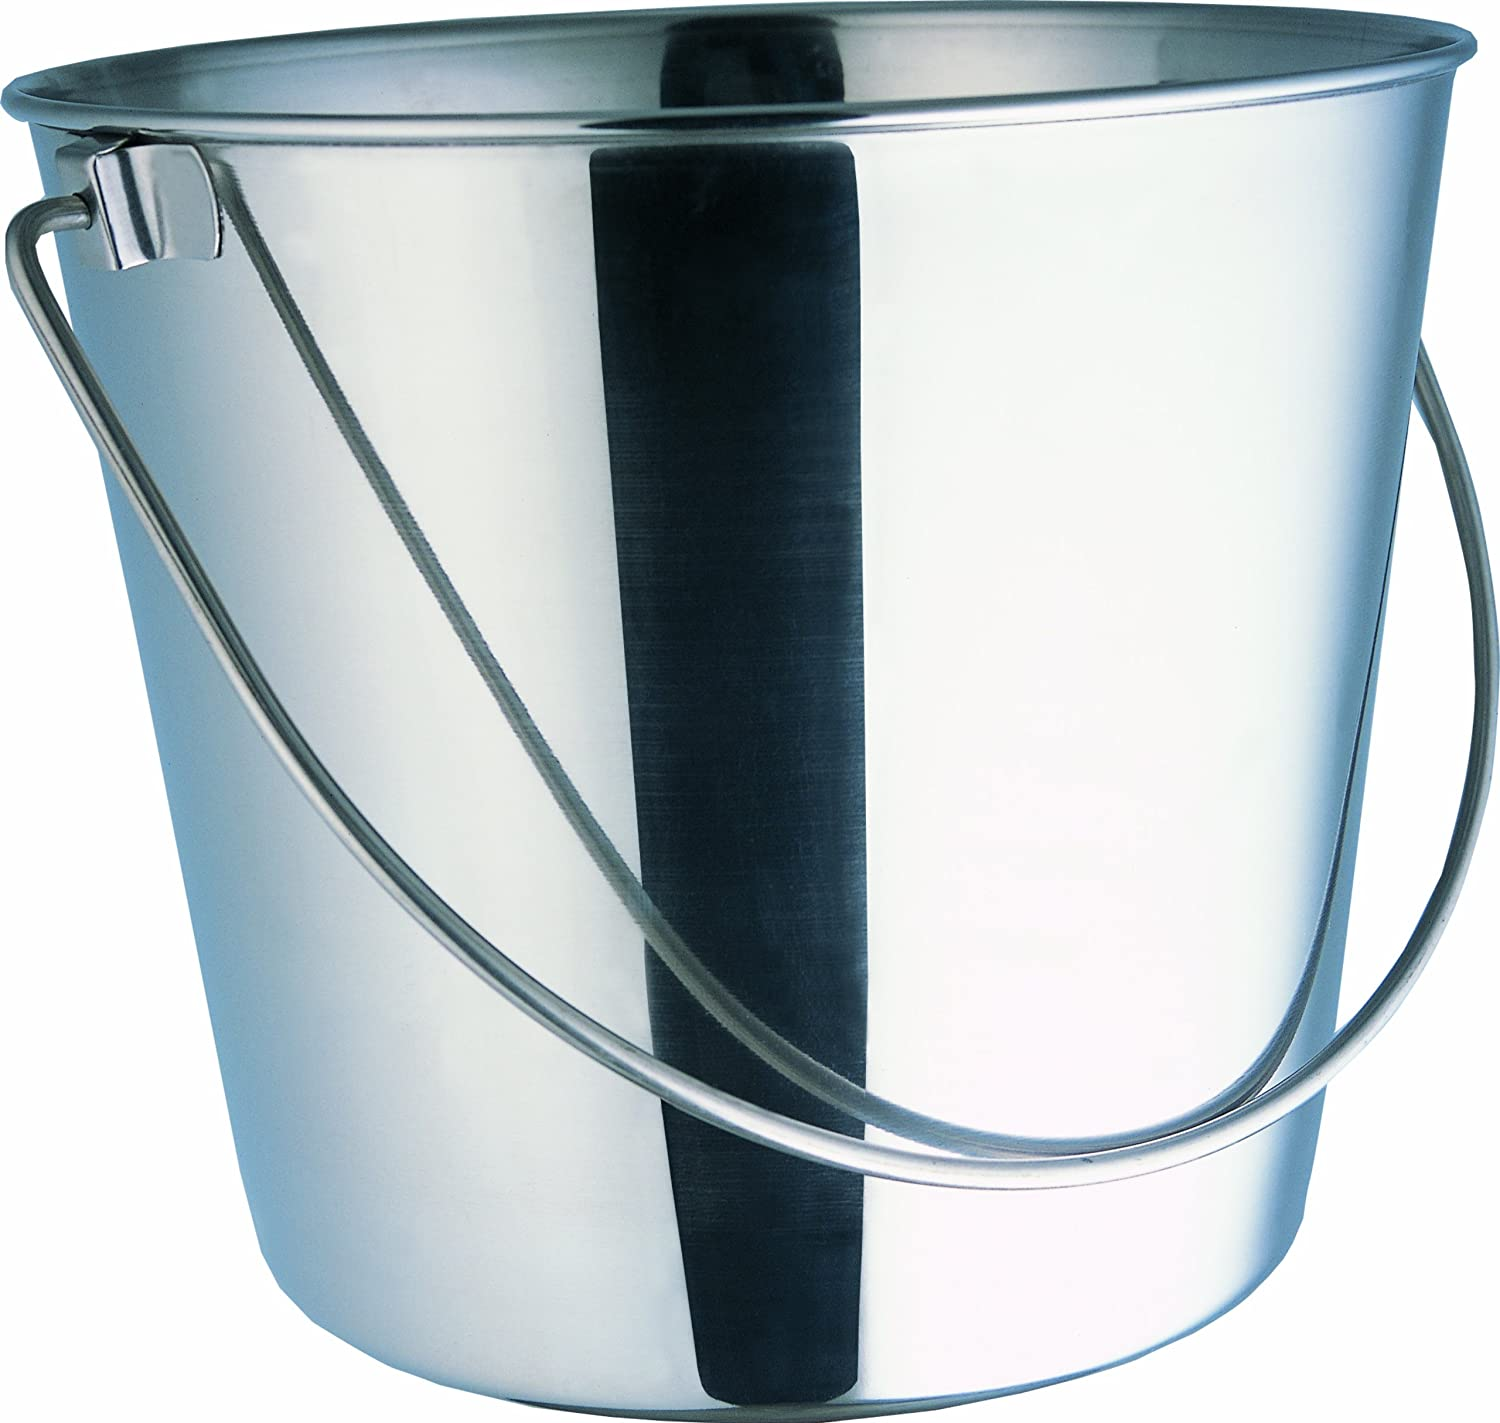 Indipets Heavy Duty Stainless Steel Pail - 16 Quart - Durable Dog Food and Water Storage